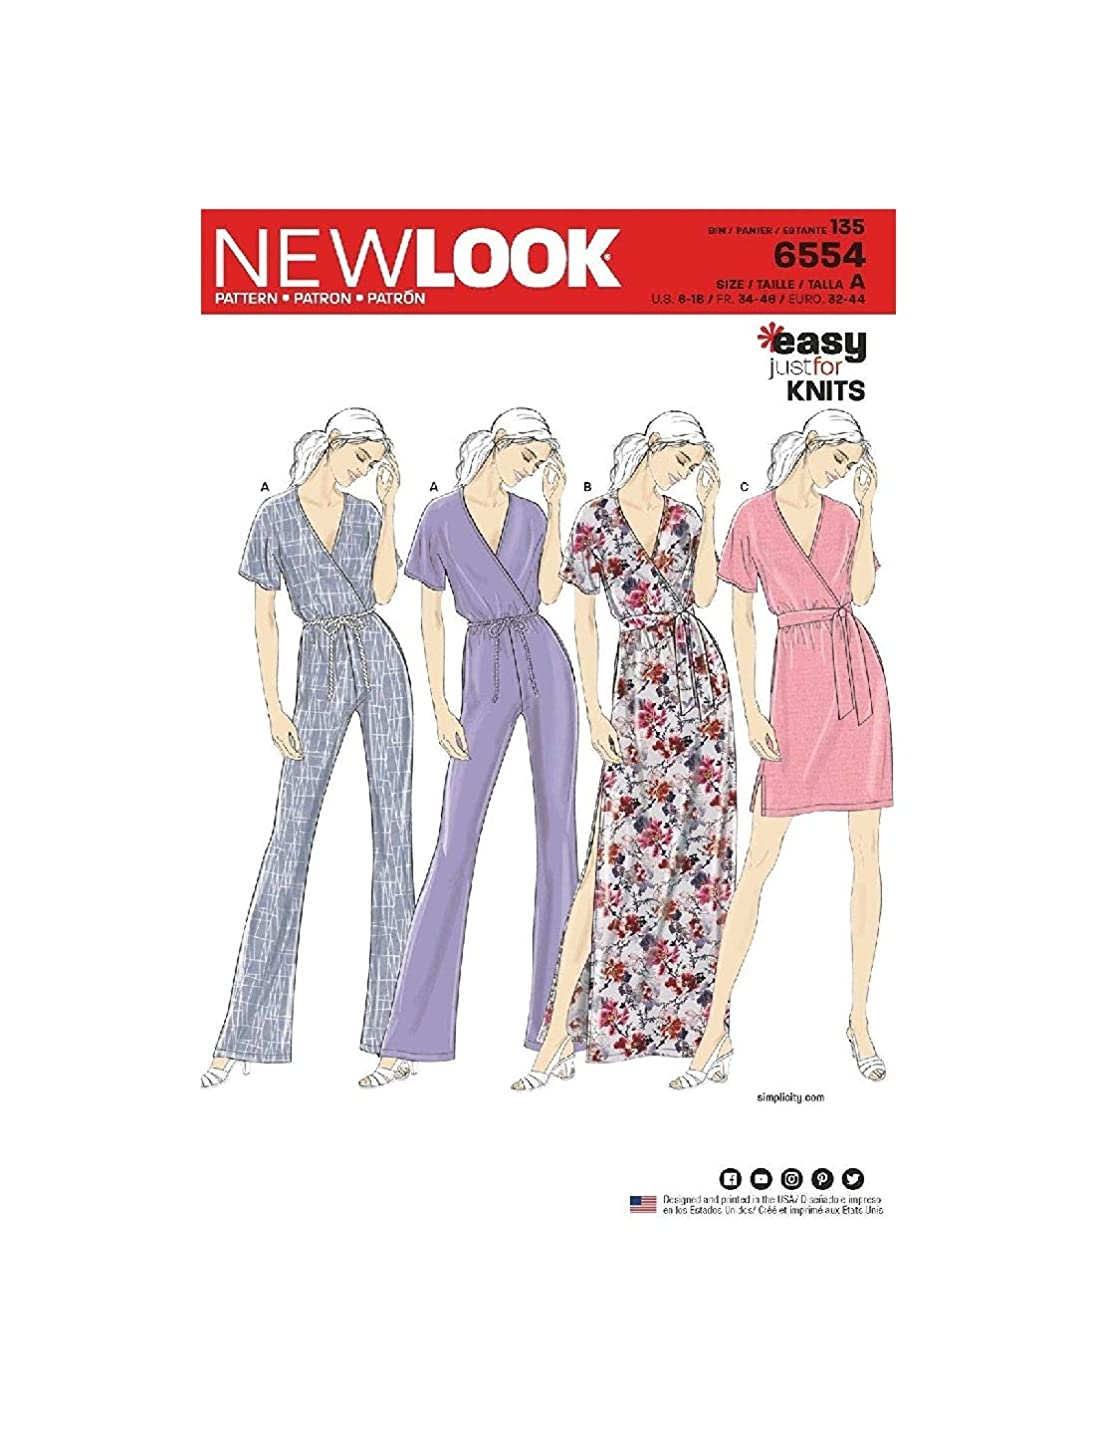 New Look 6554 Misses' Knit Jumpsuit and Dresses Sizes 6-18 Sewing Pattern